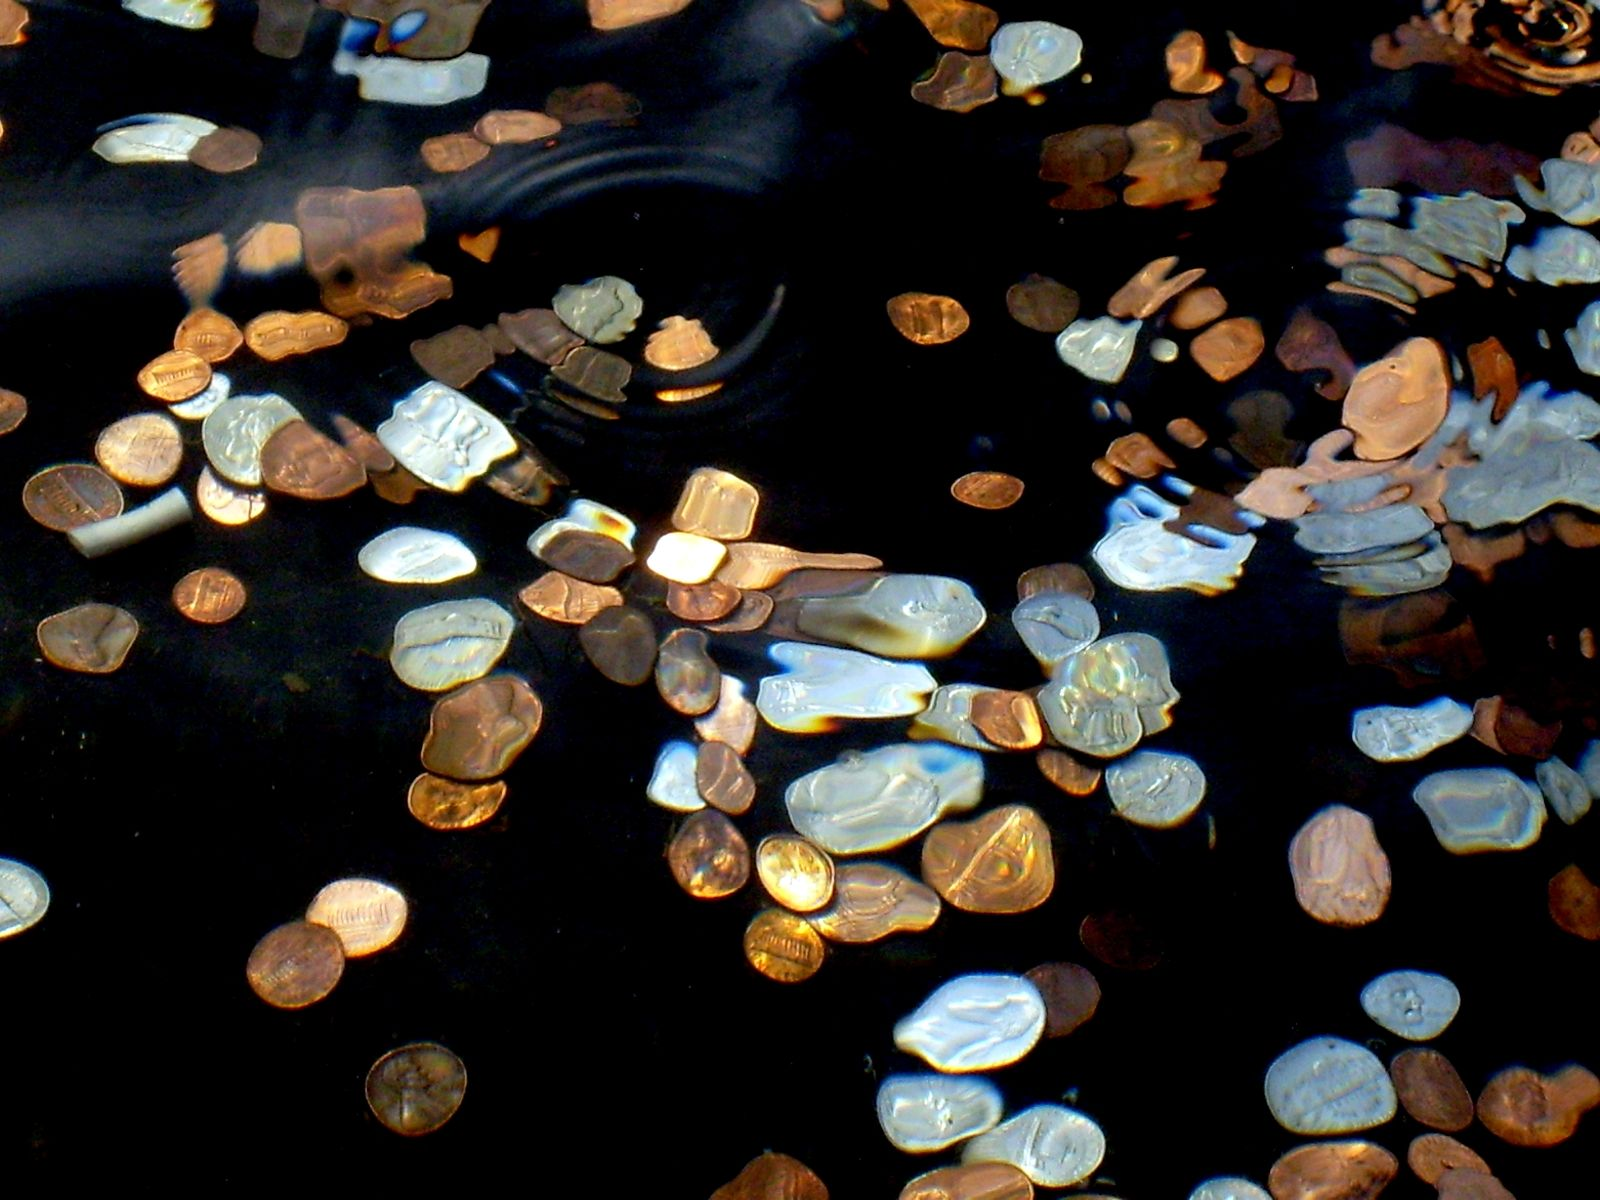 Throwing Coins Into A River